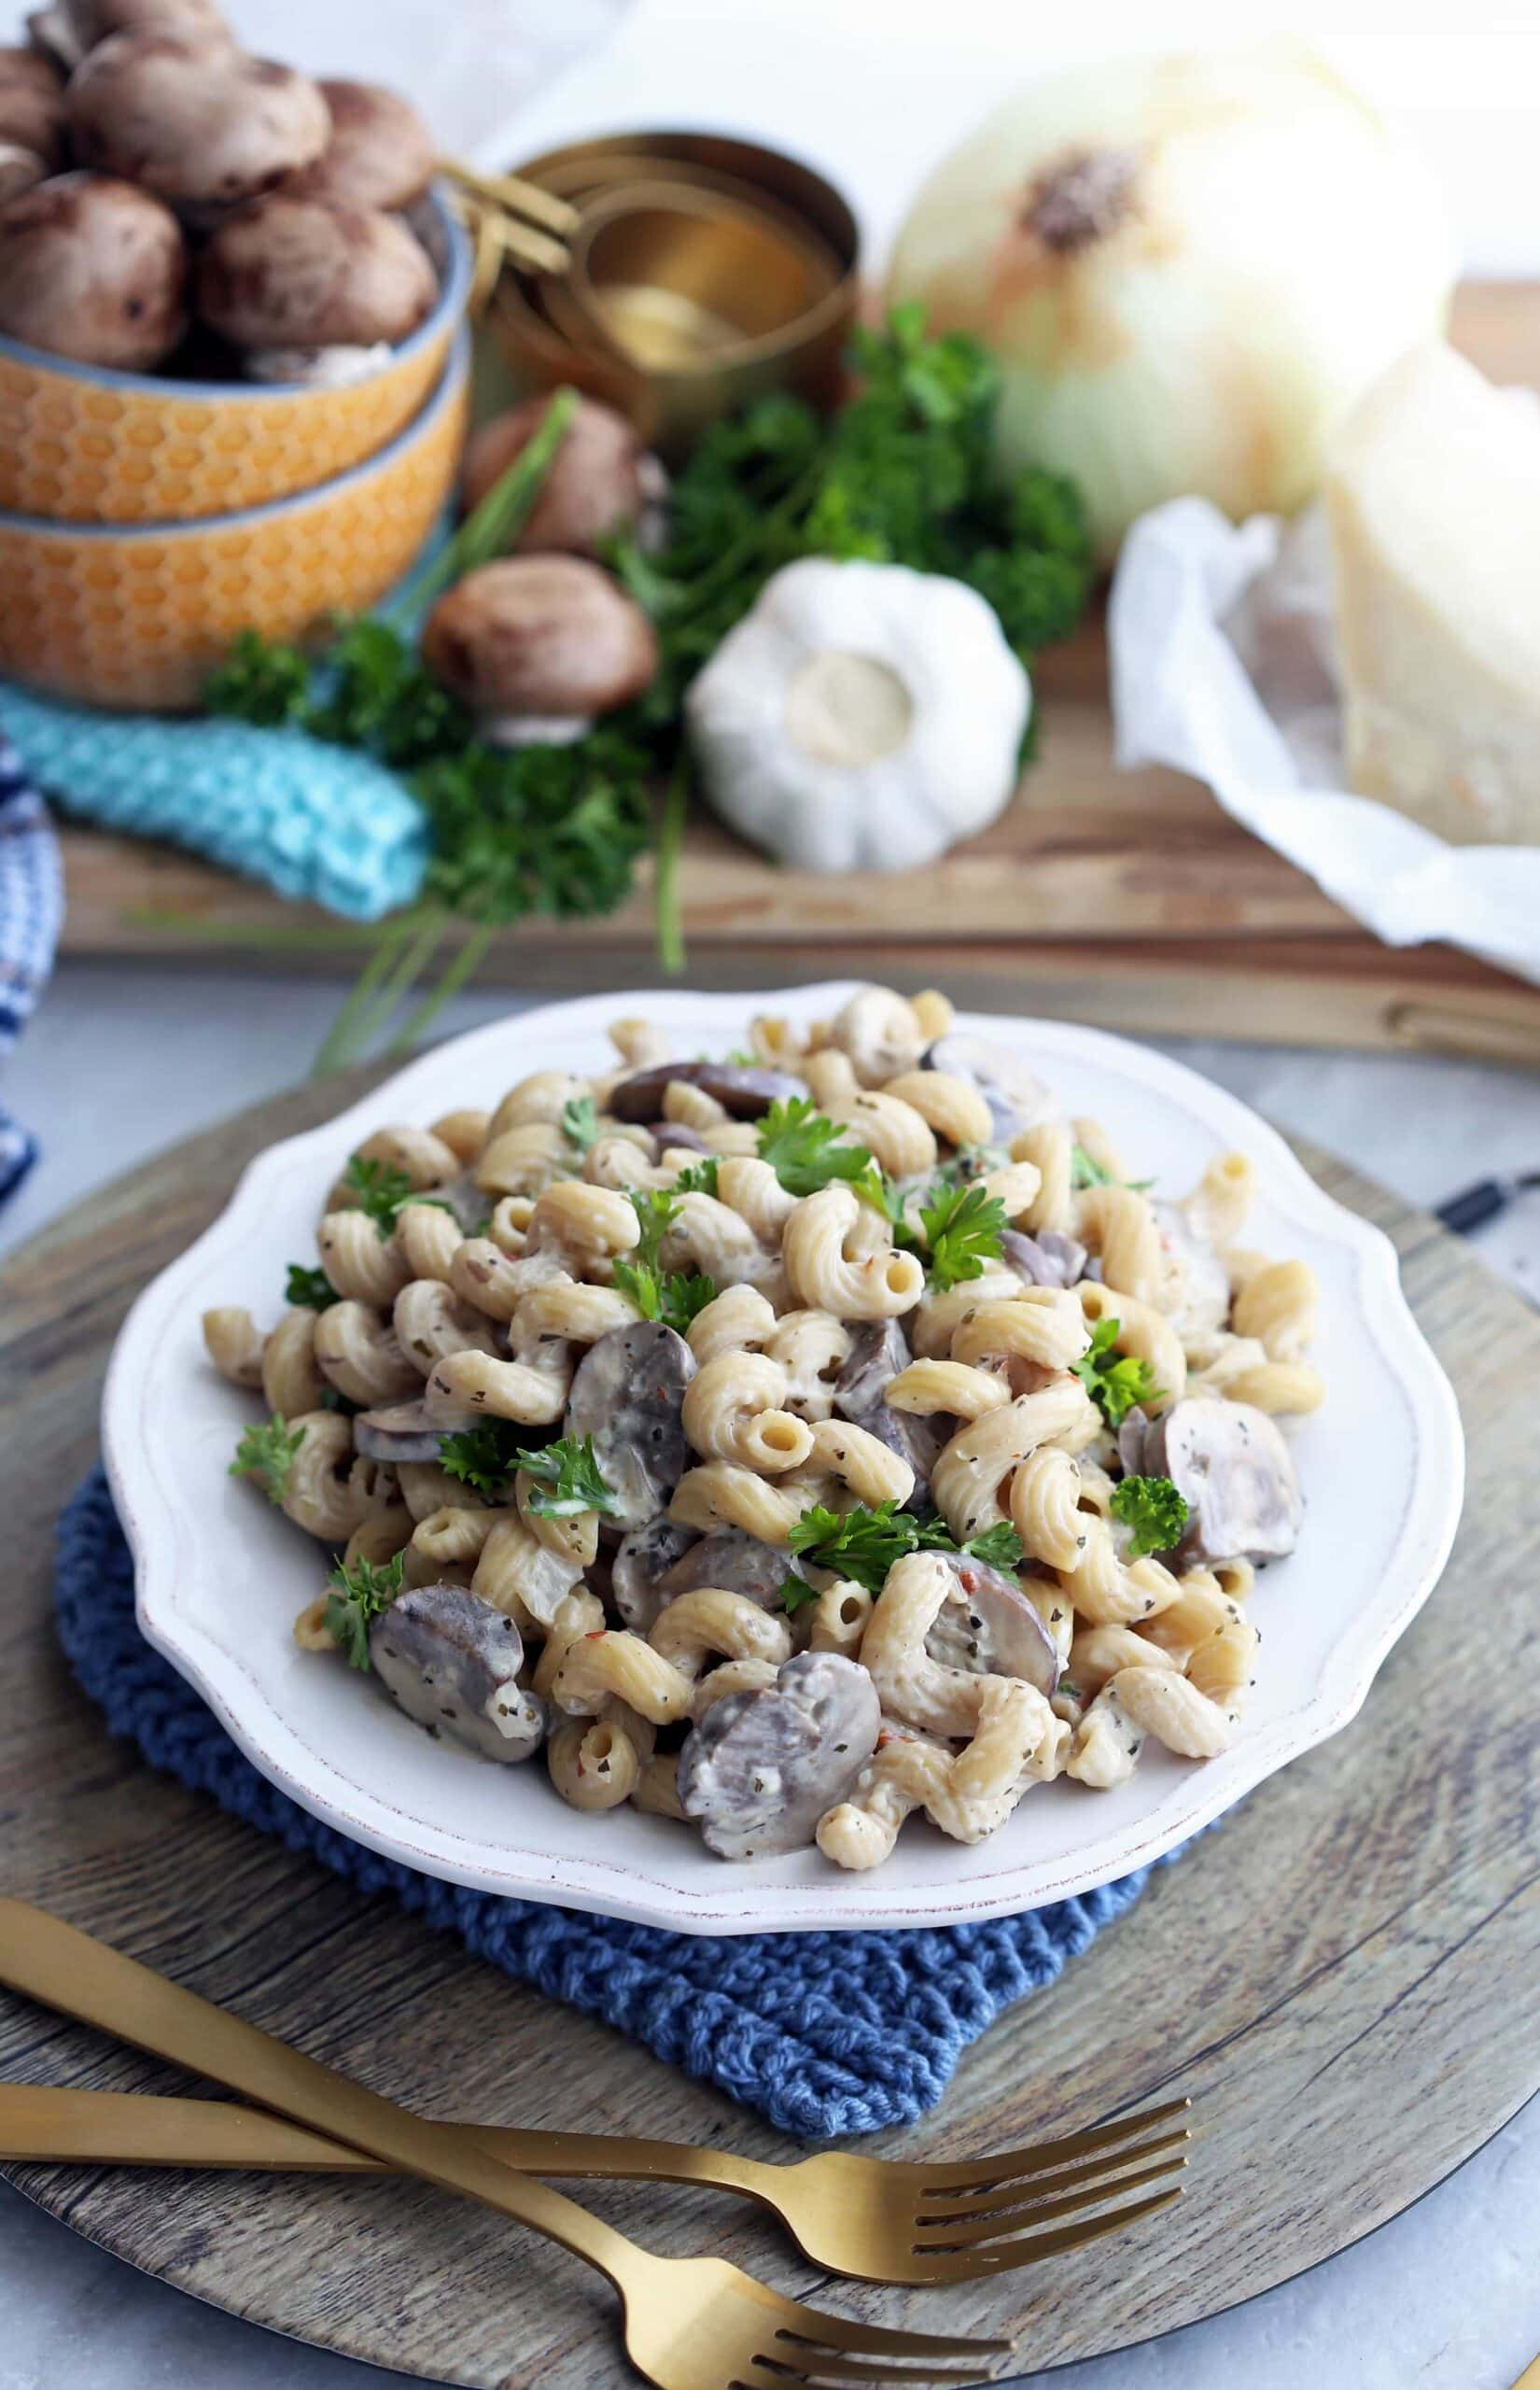 Instant Pot Mushroom Pasta with Creamy Cheese Sauce